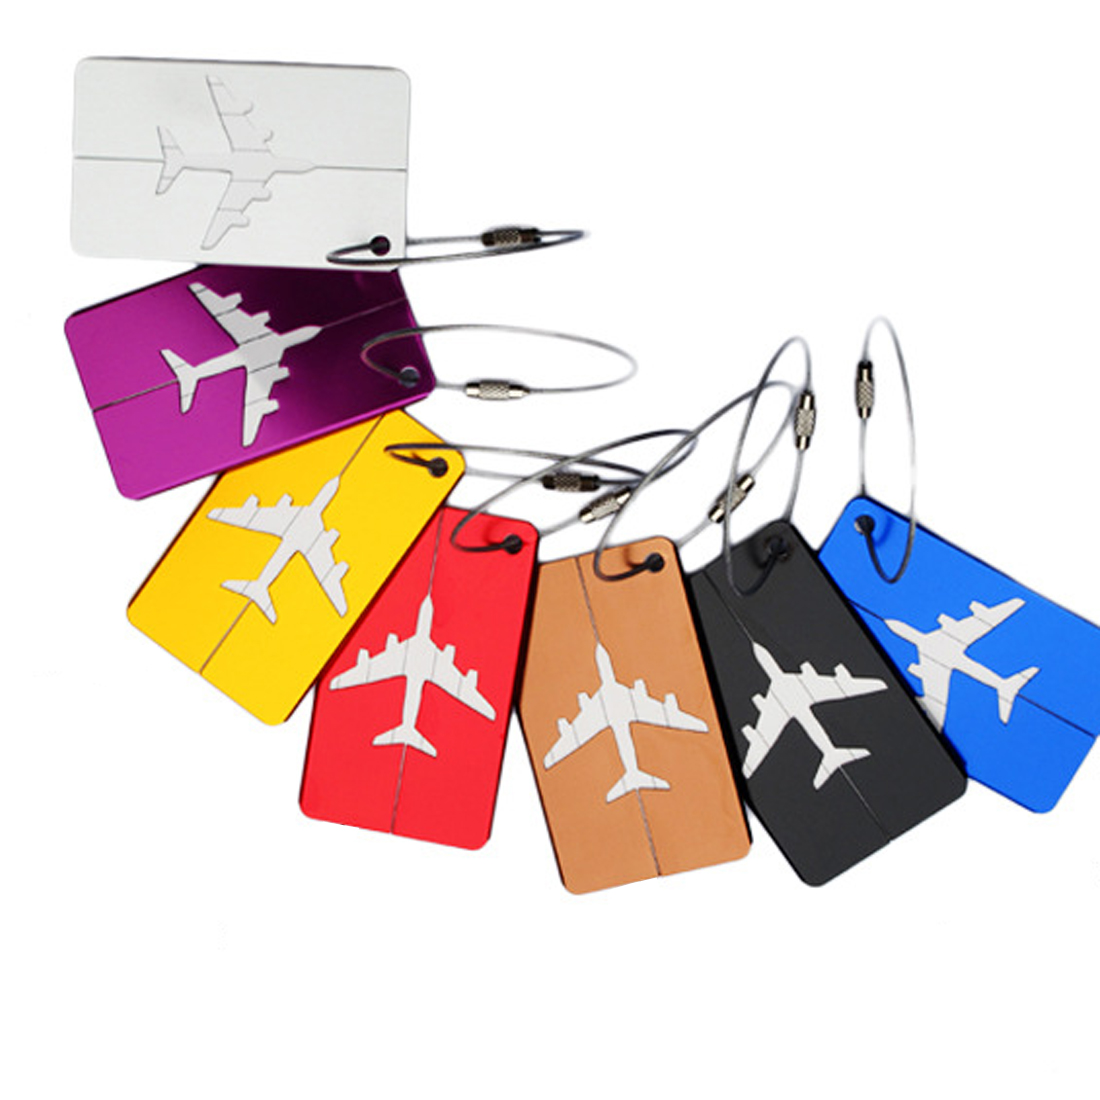 Creative Mini Rectangle Aluminium Alloy Luggage Tags Travel Accessories Baggage Name Tags Suitcase Address Label Holder